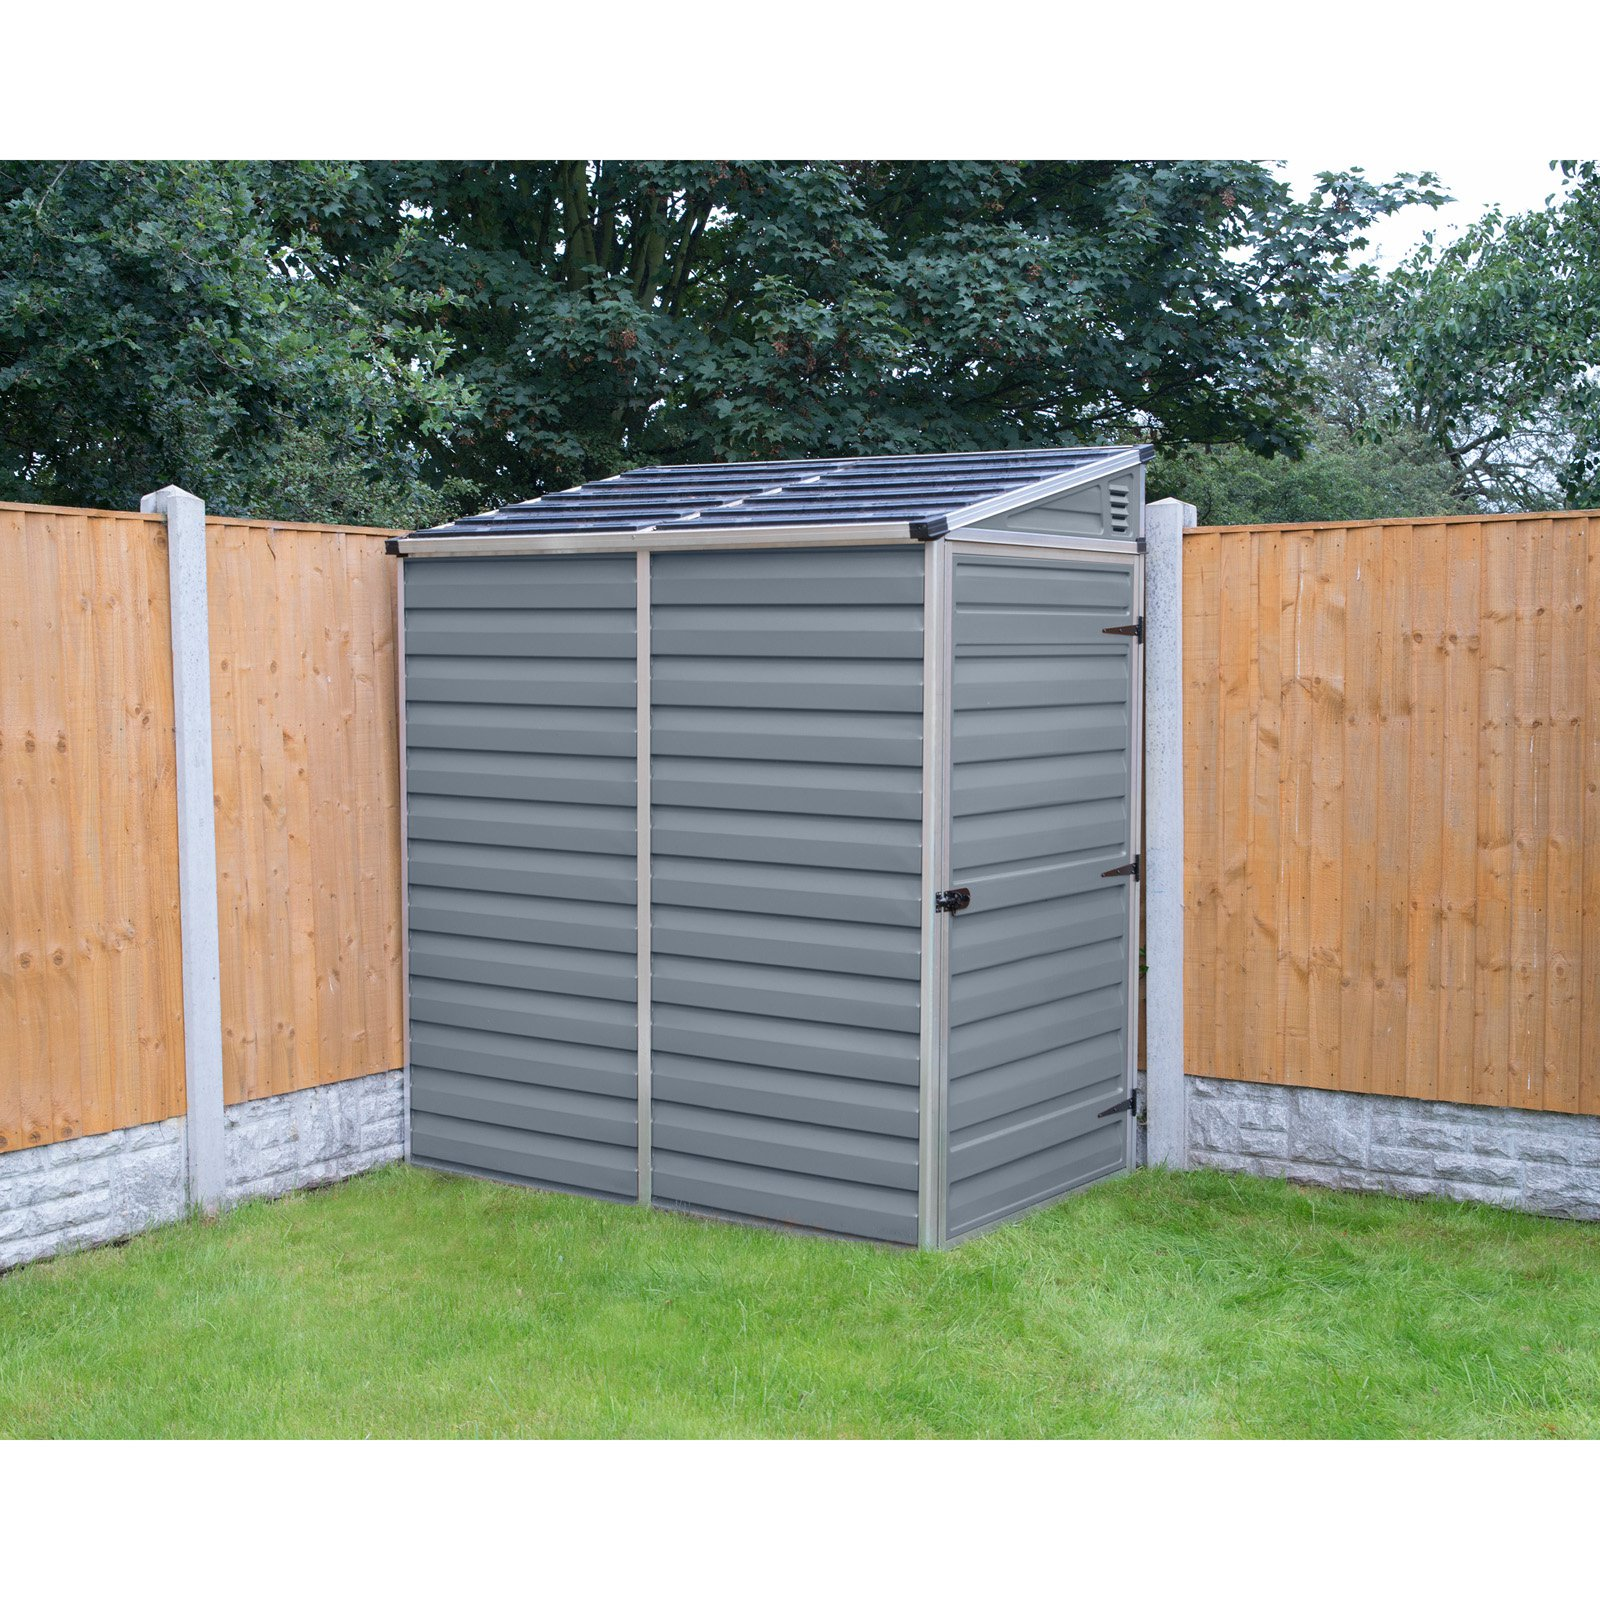 Delicieux Palram SkyLight Lean To Storage Shed   4 X 6 Ft.